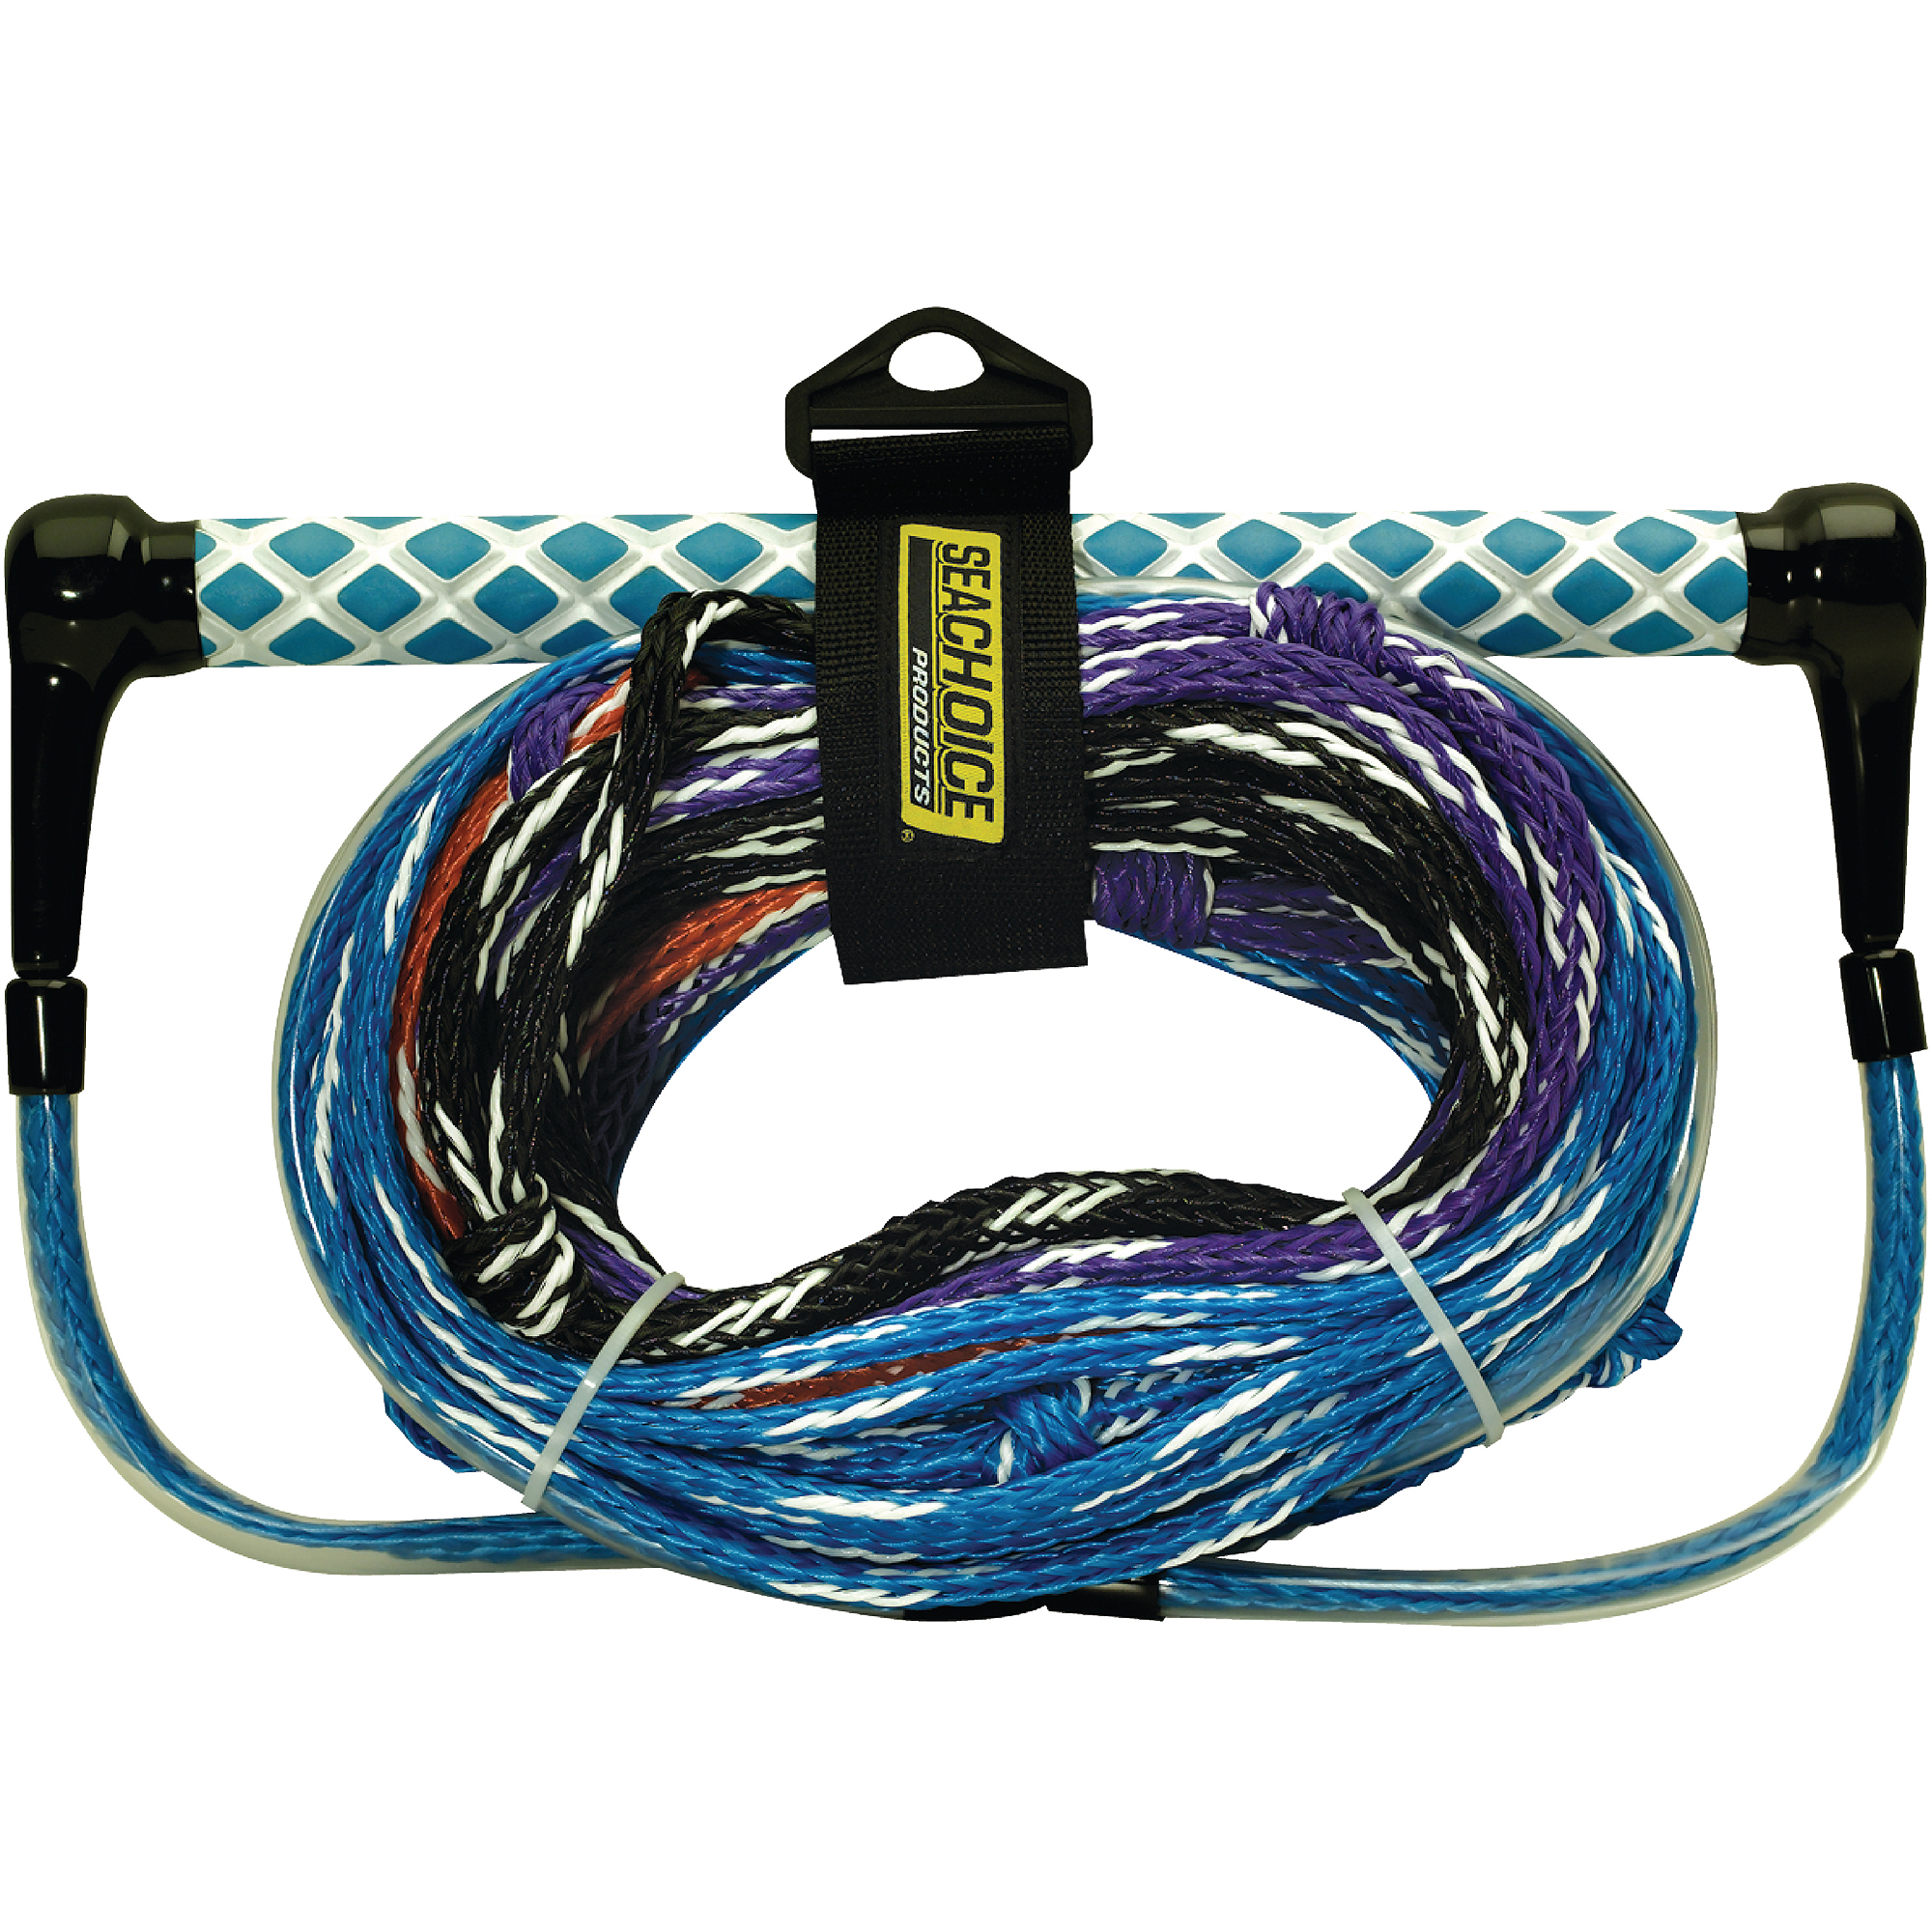 Seachoice 4-Section Water Ski Rope, 75' by Seachoice Products